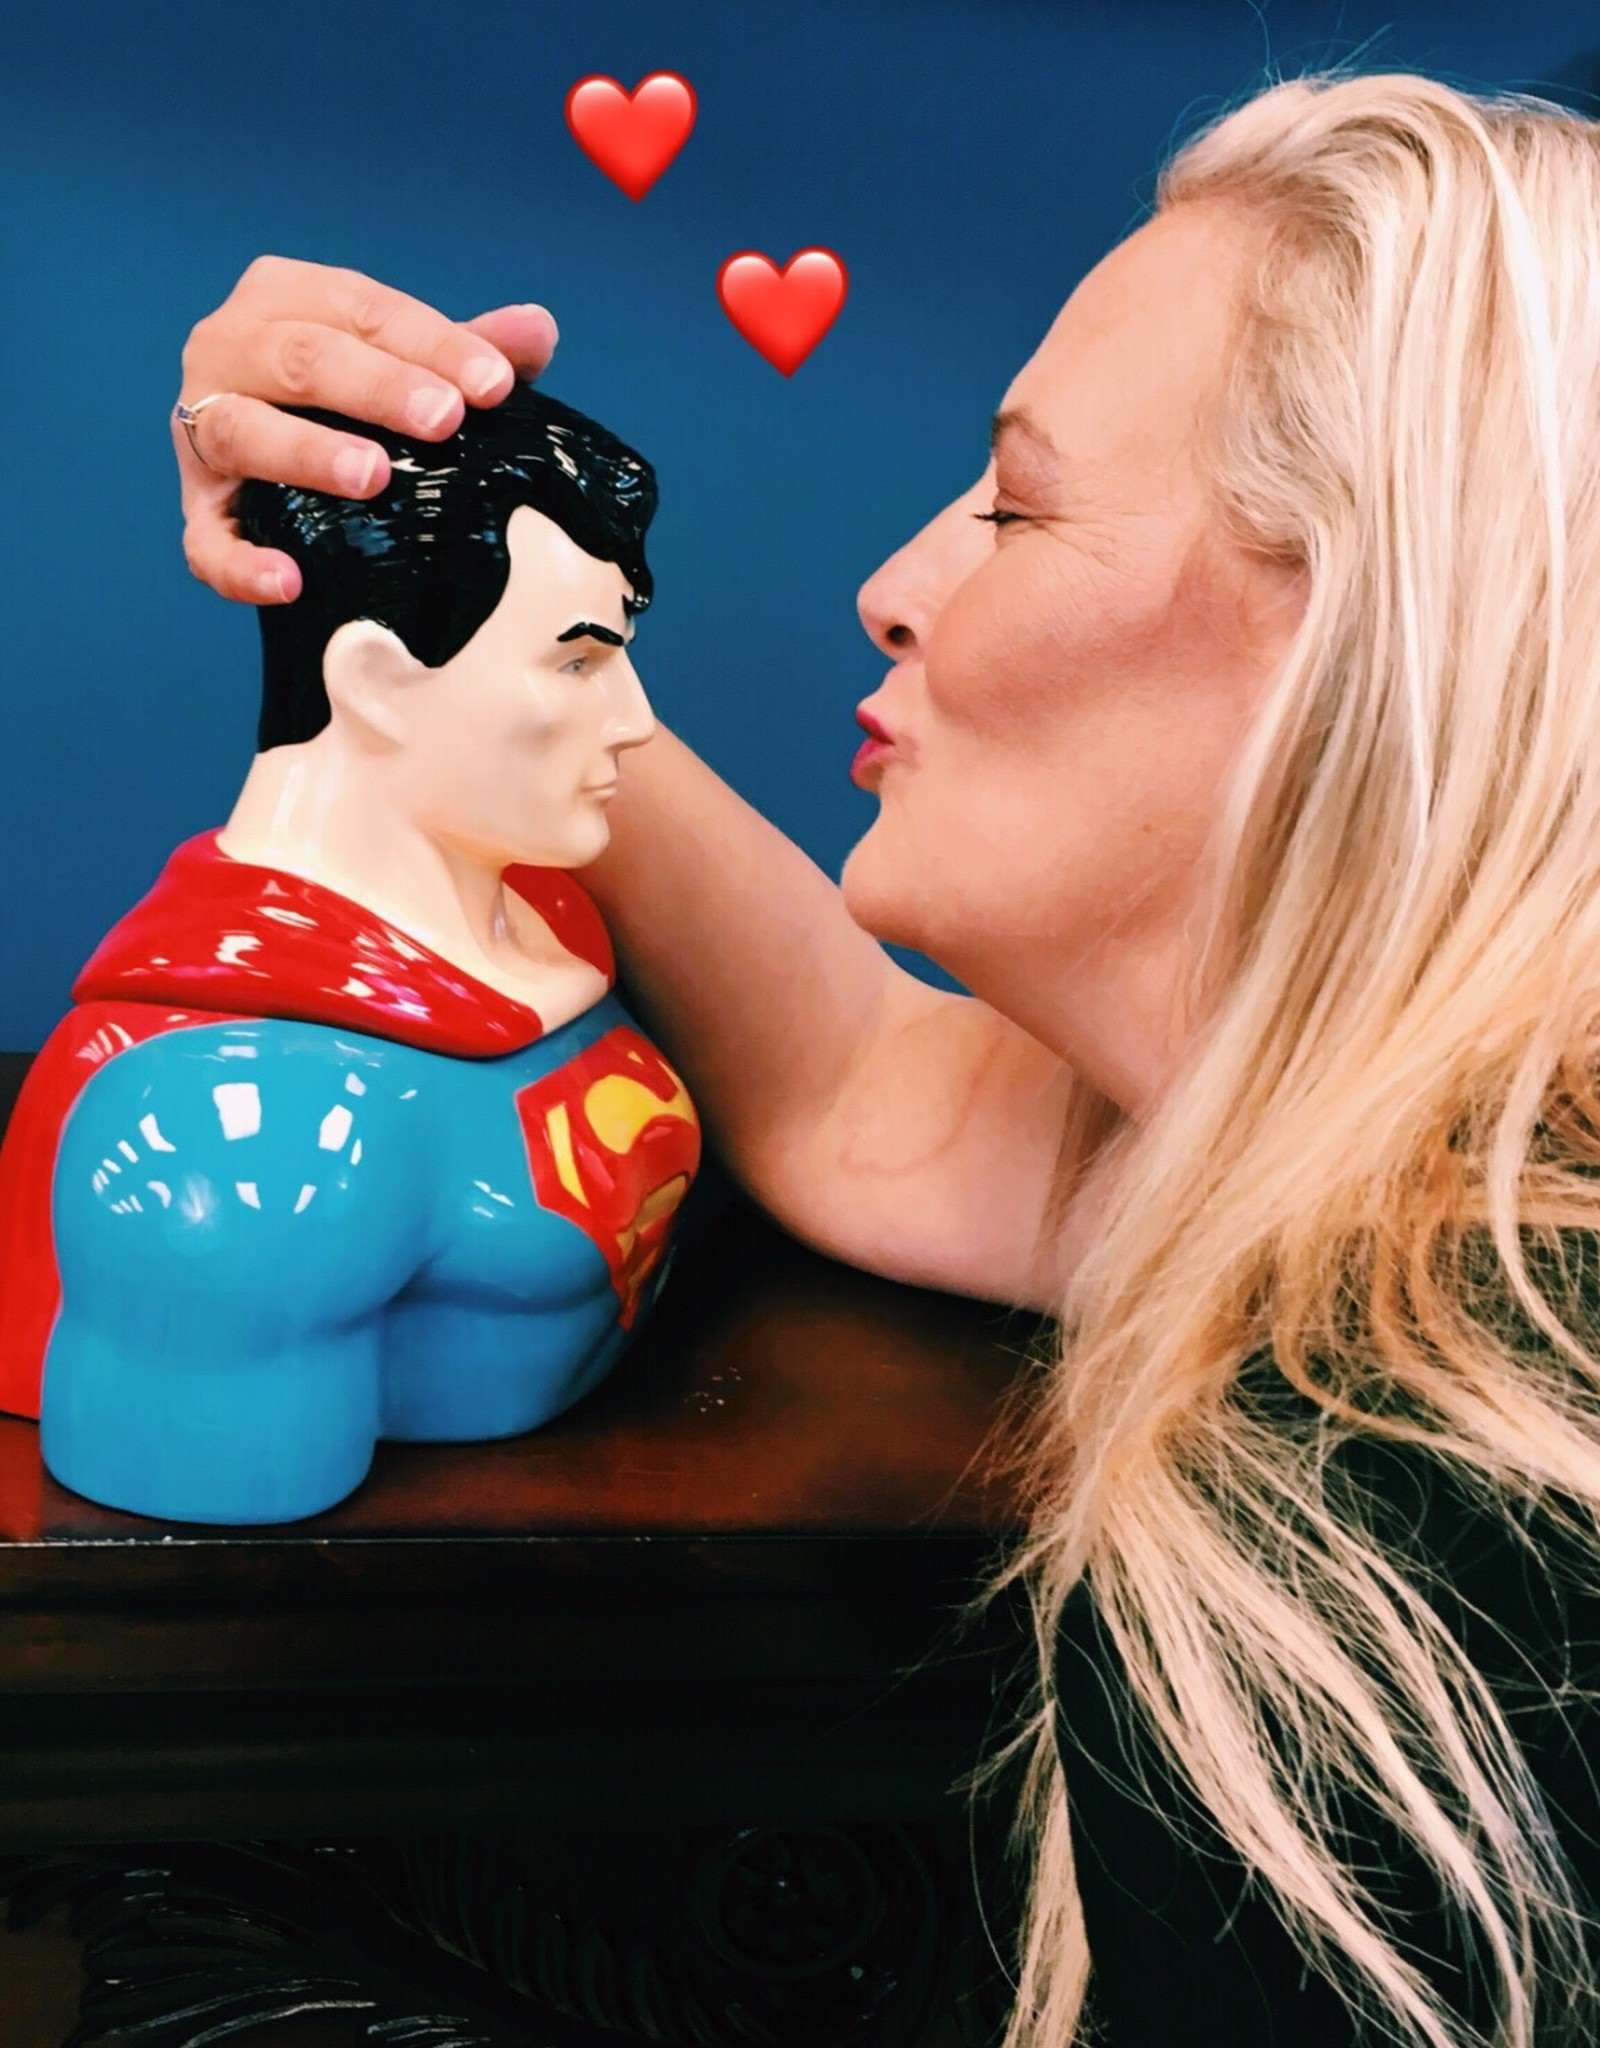 Pretty Strong Superman Cookie Jar